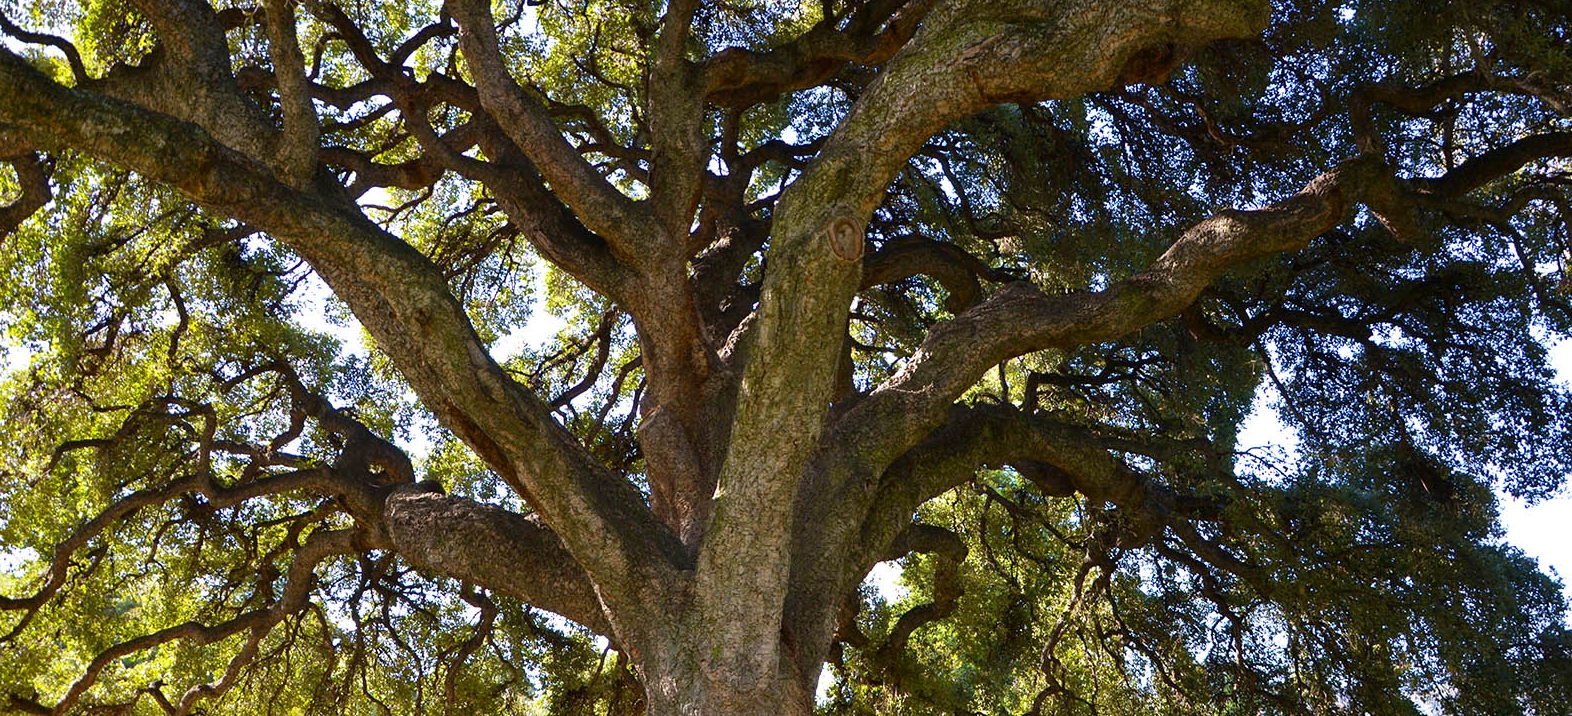 looking up into the large cork oak branch structure